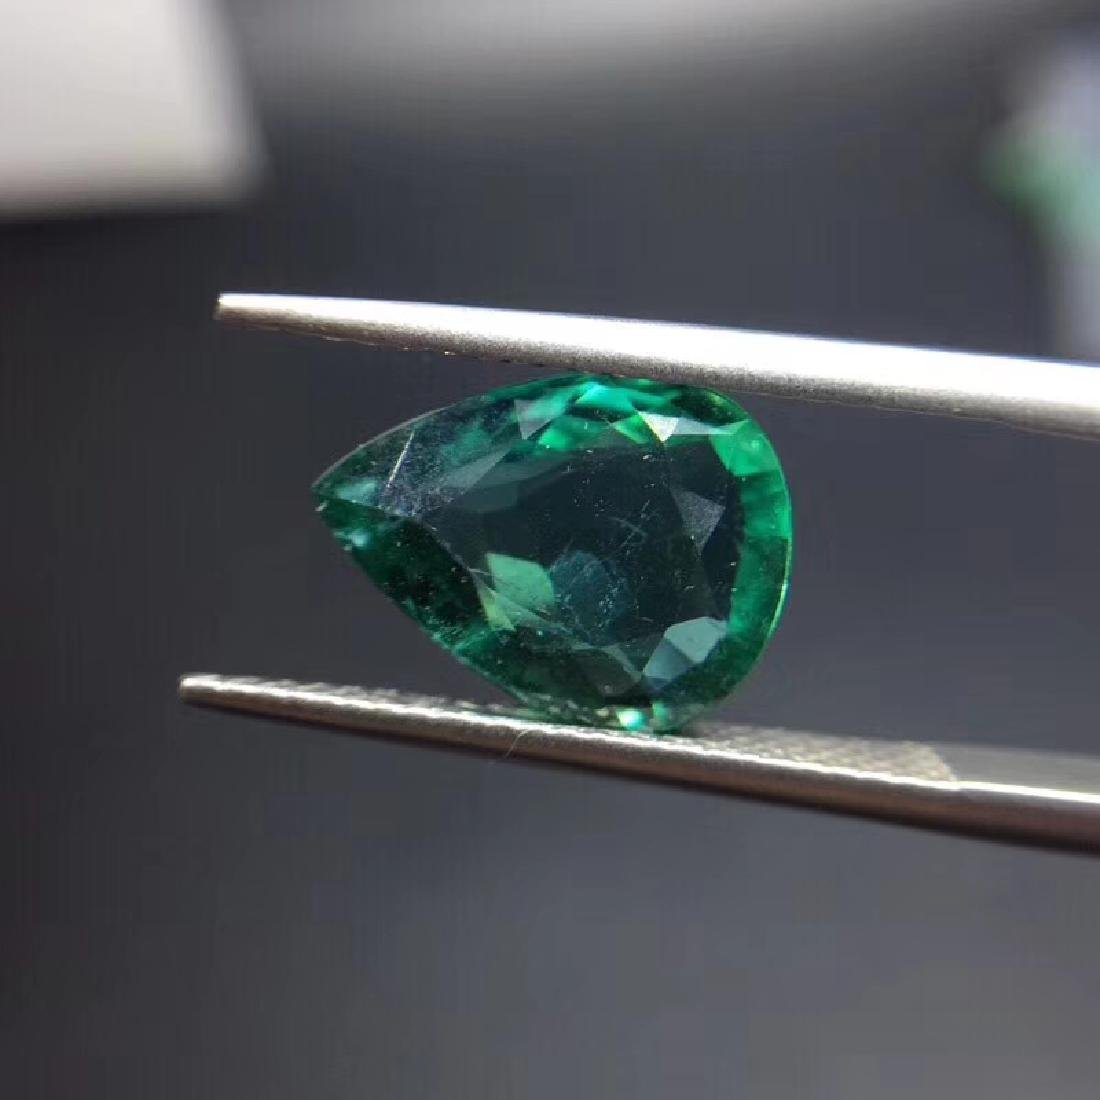 2.97 ct Emerald 9.3*12.3*4.2 mm Pear Cut